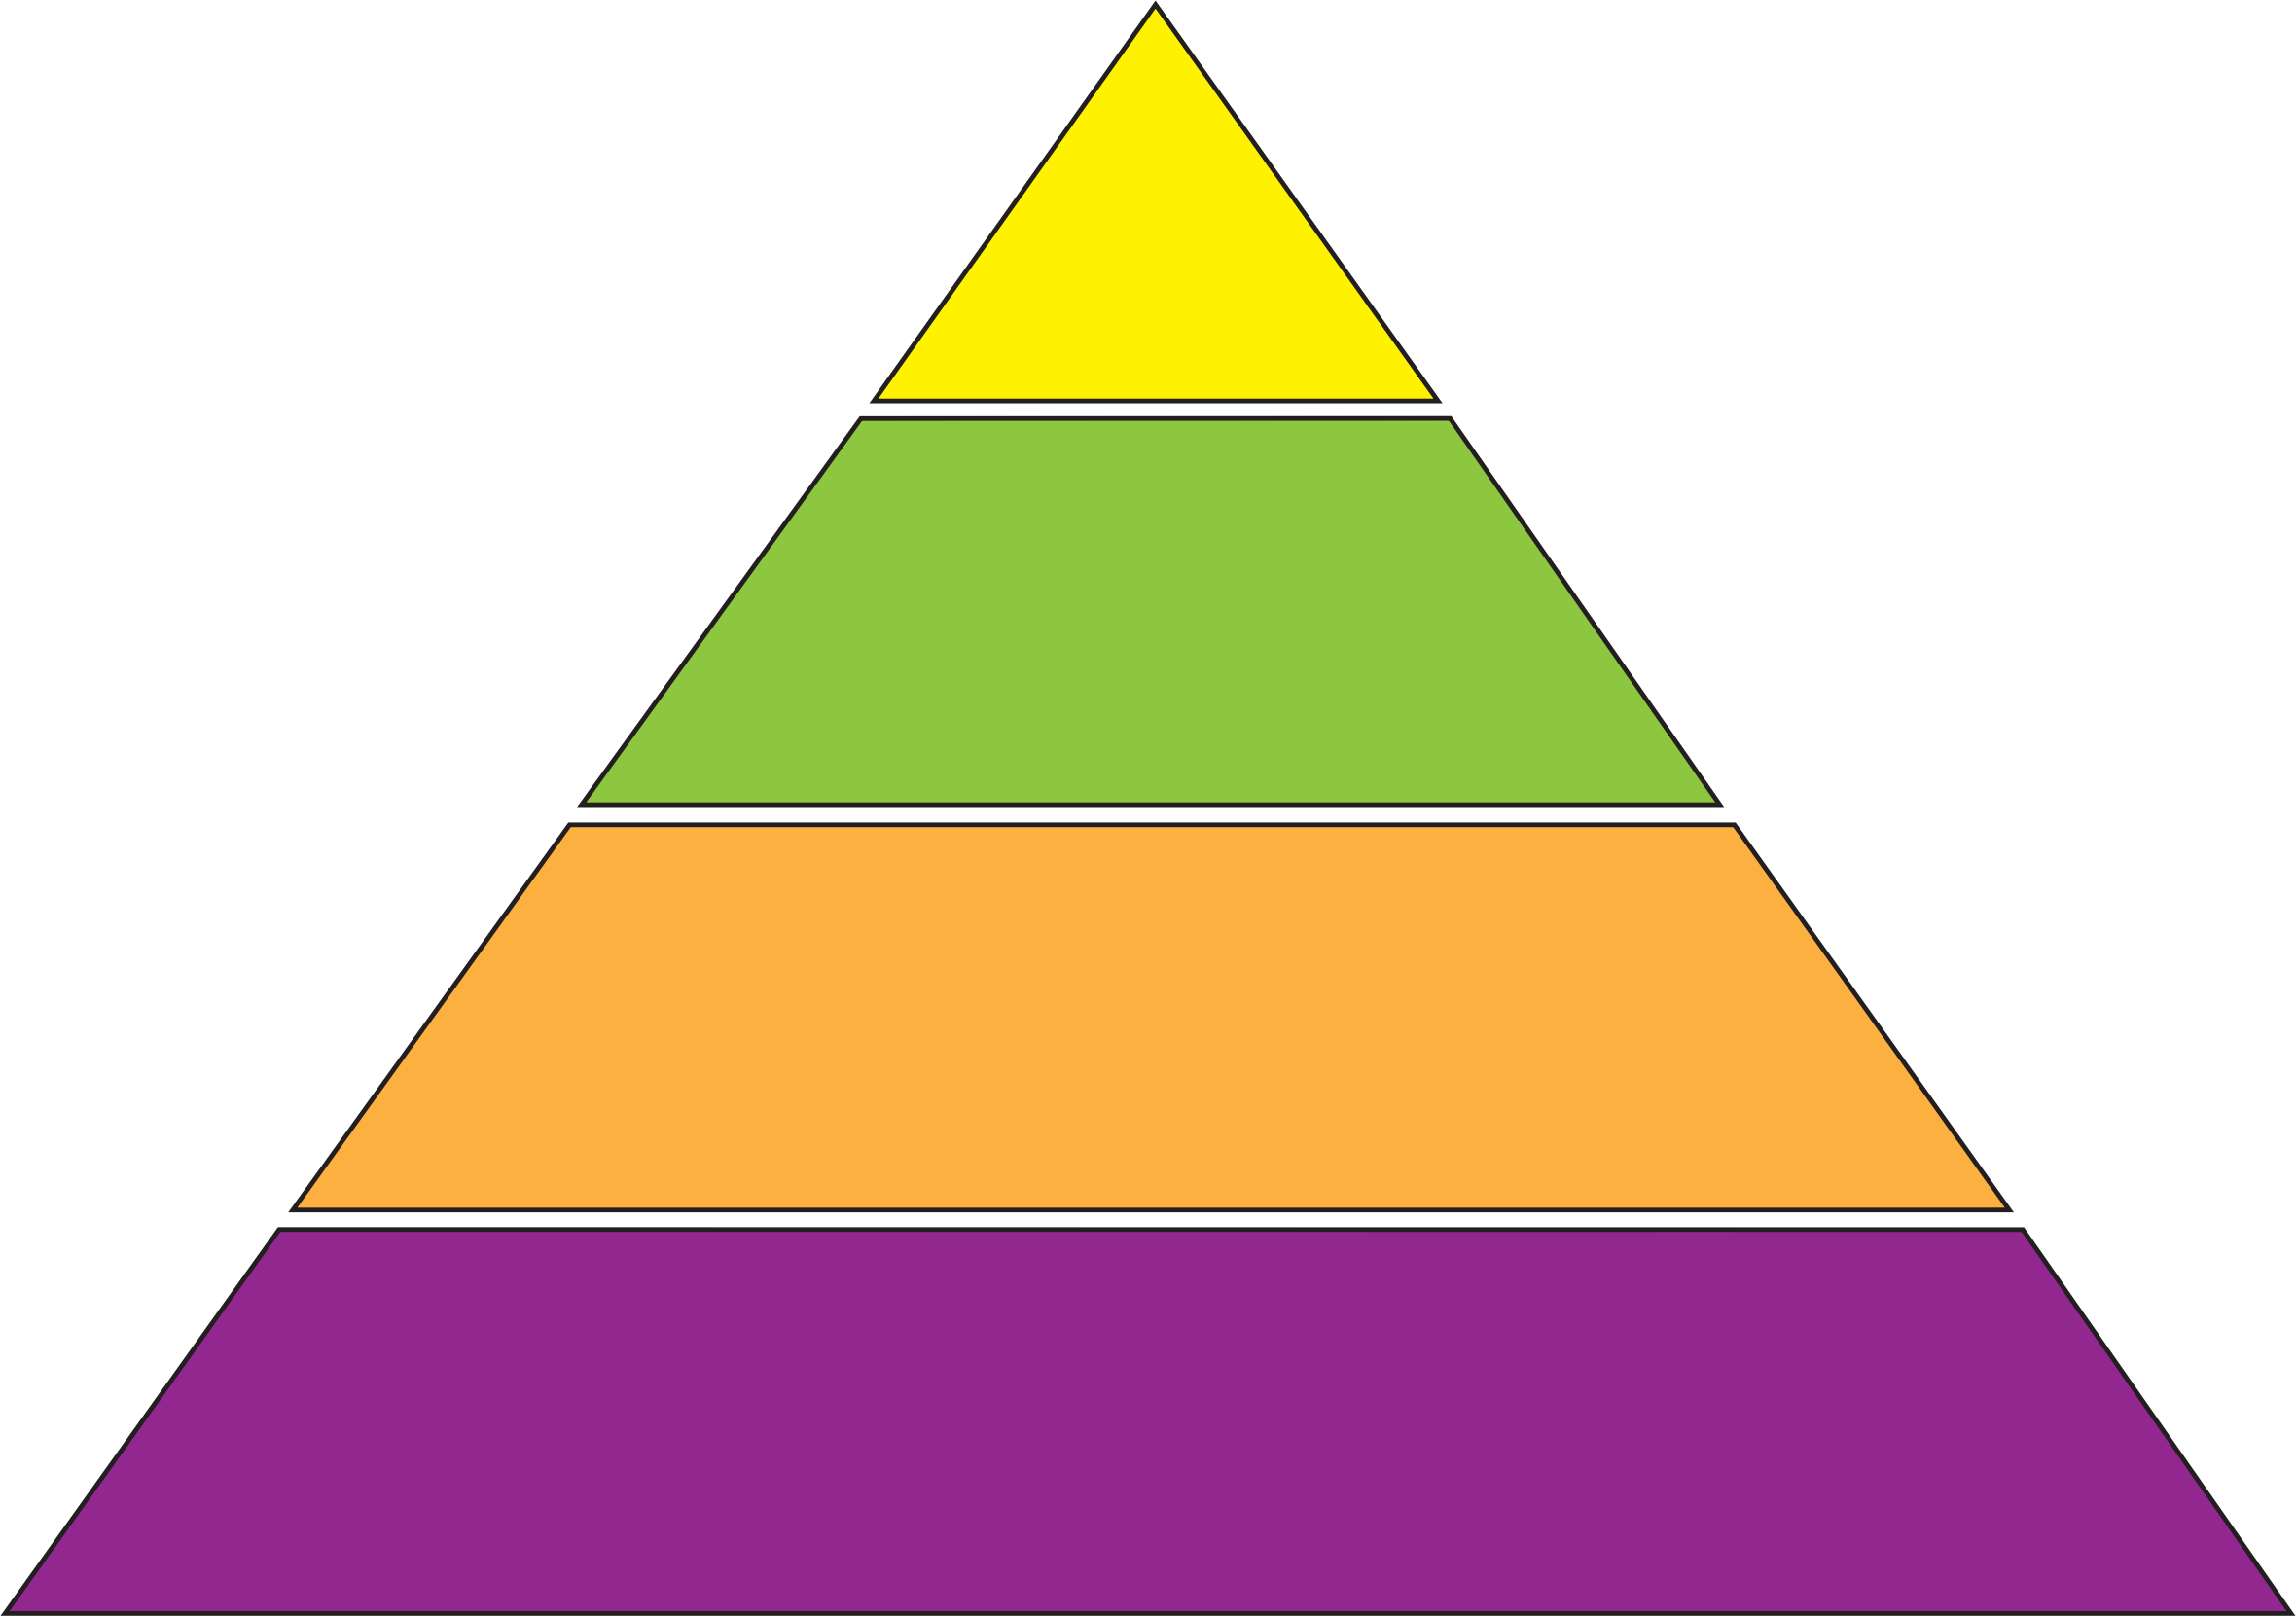 pyramide clipart 187 clipart station